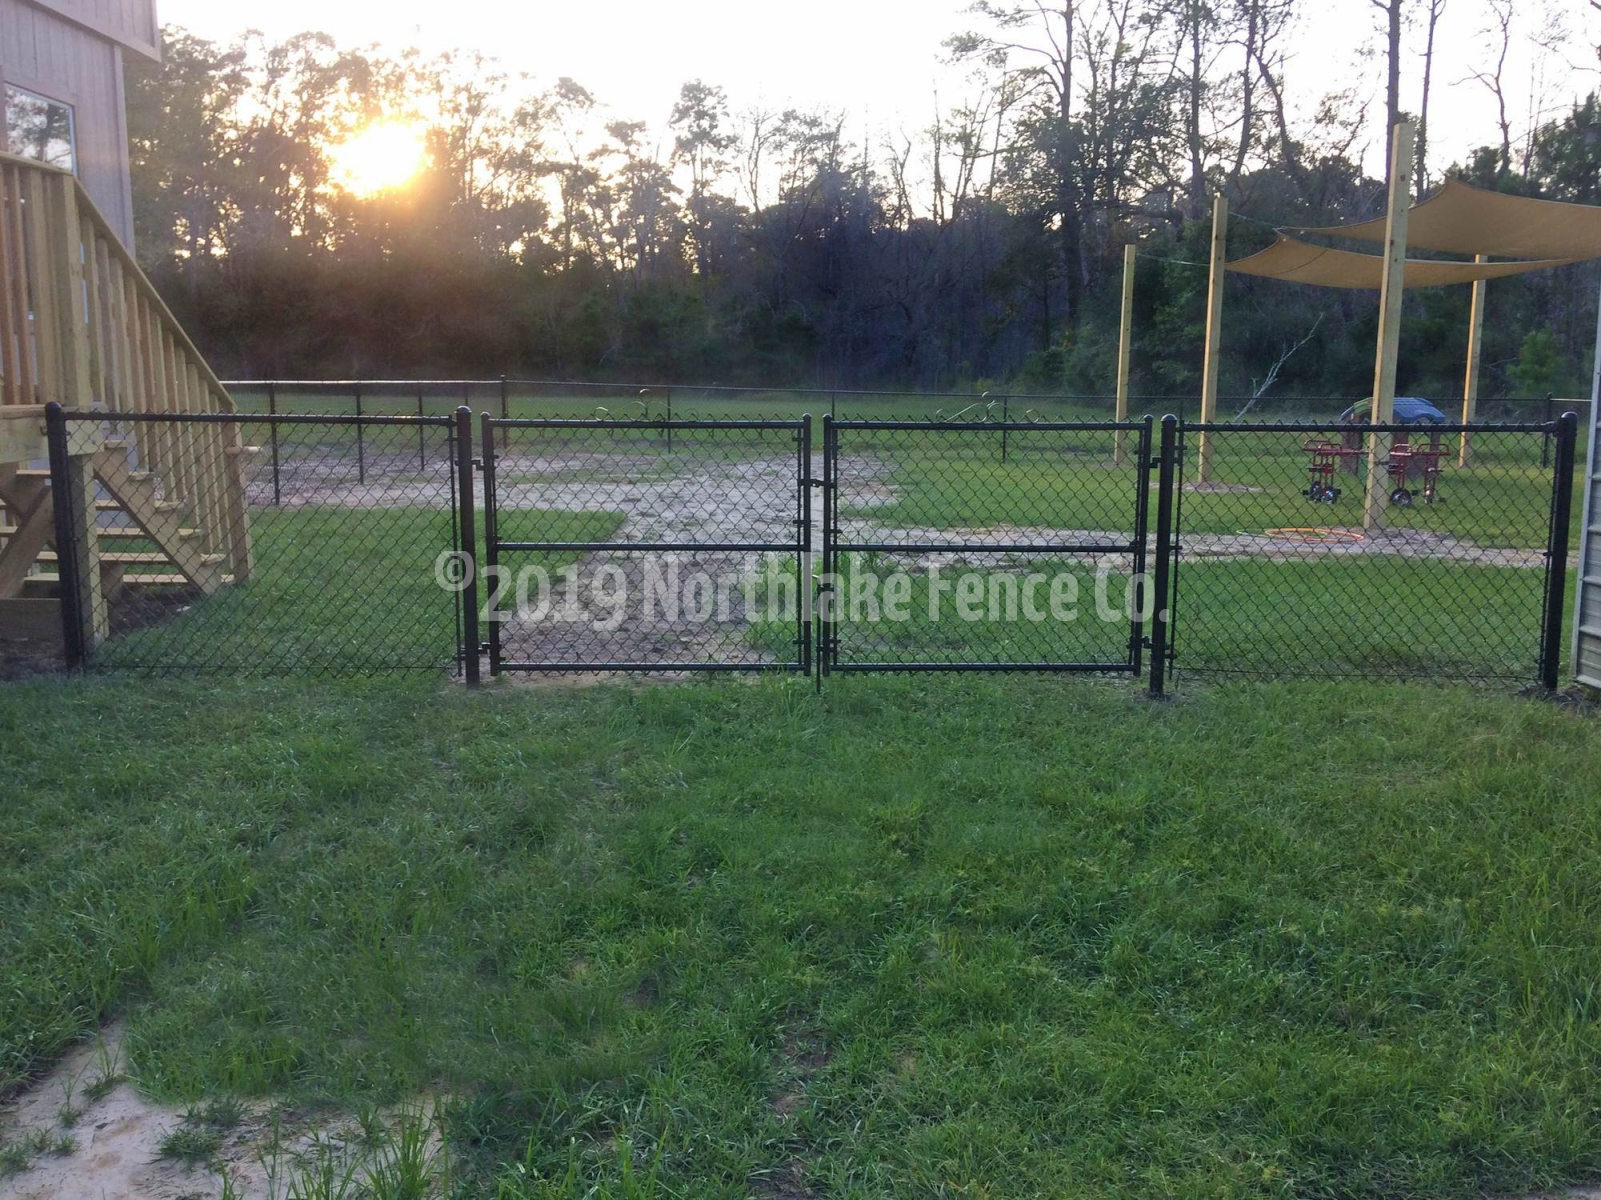 Fence clipart fenced yard Transparent pictures on F.